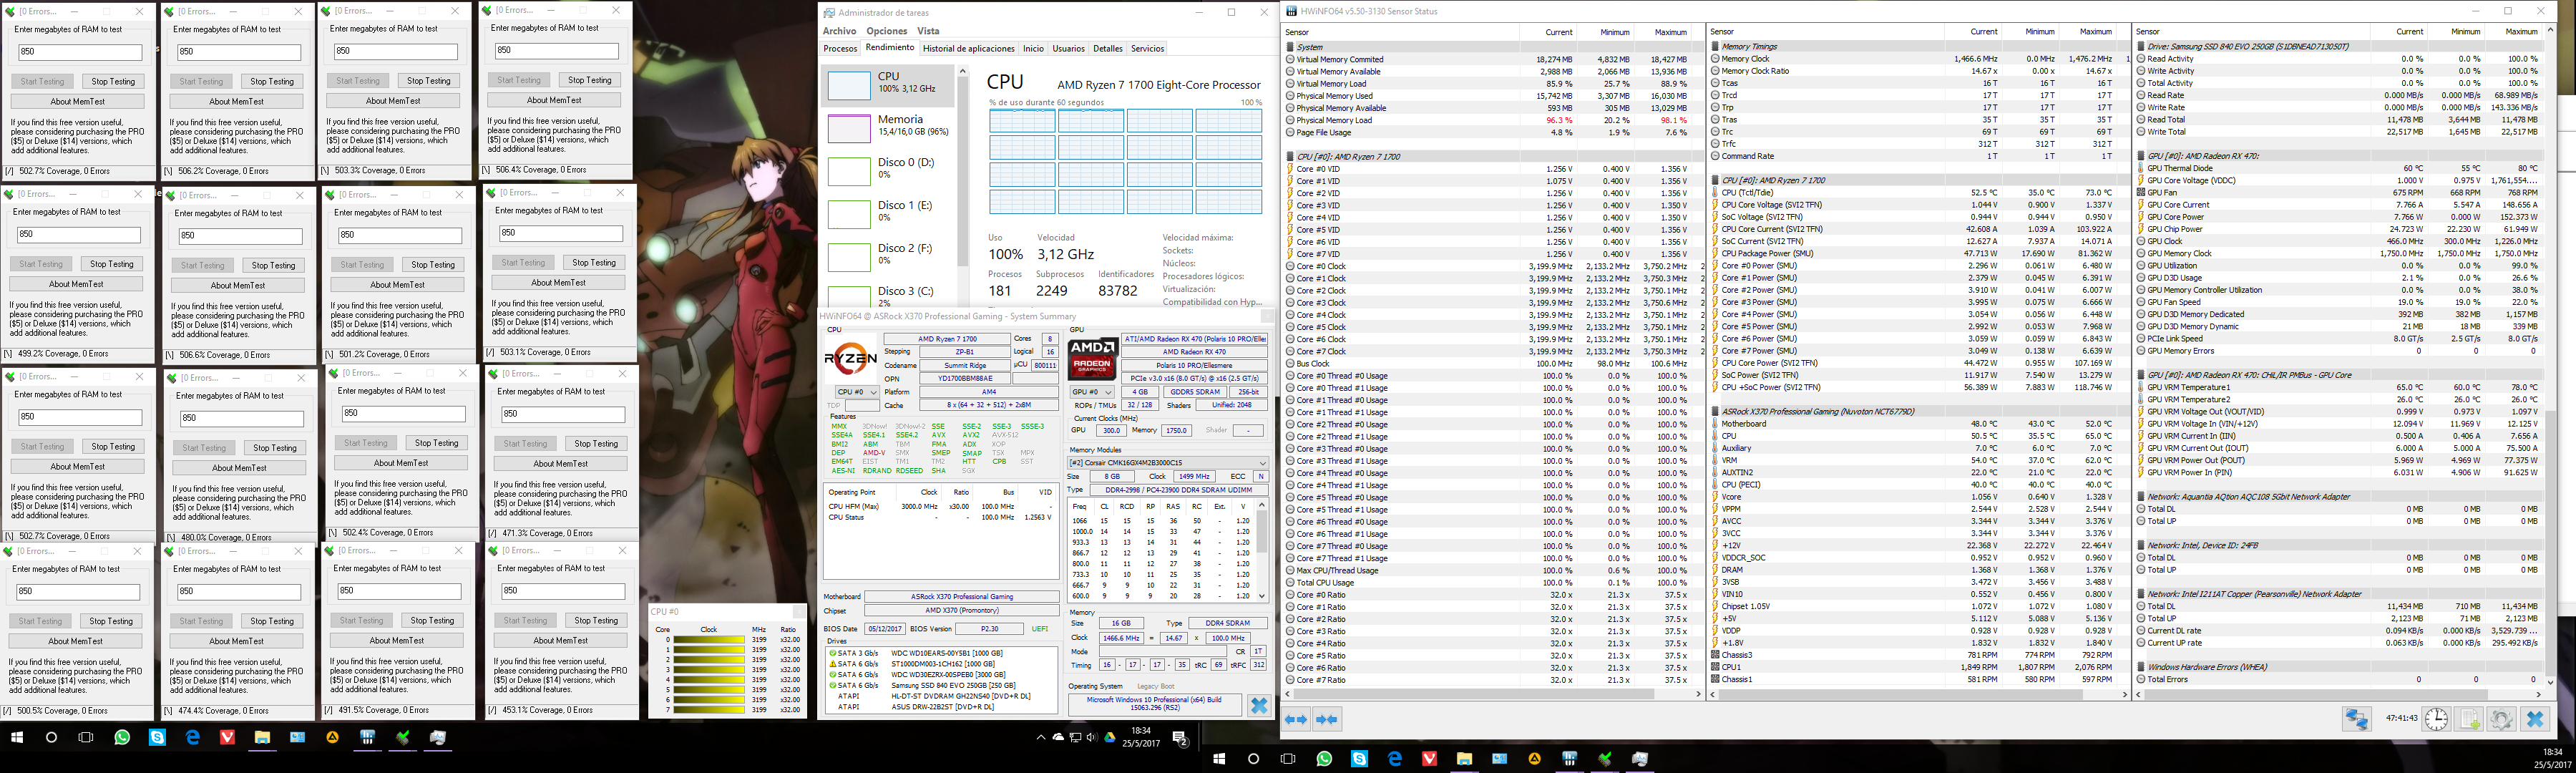 Official] AMD Ryzen DDR4 24/7 Memory Stability Thread - Page